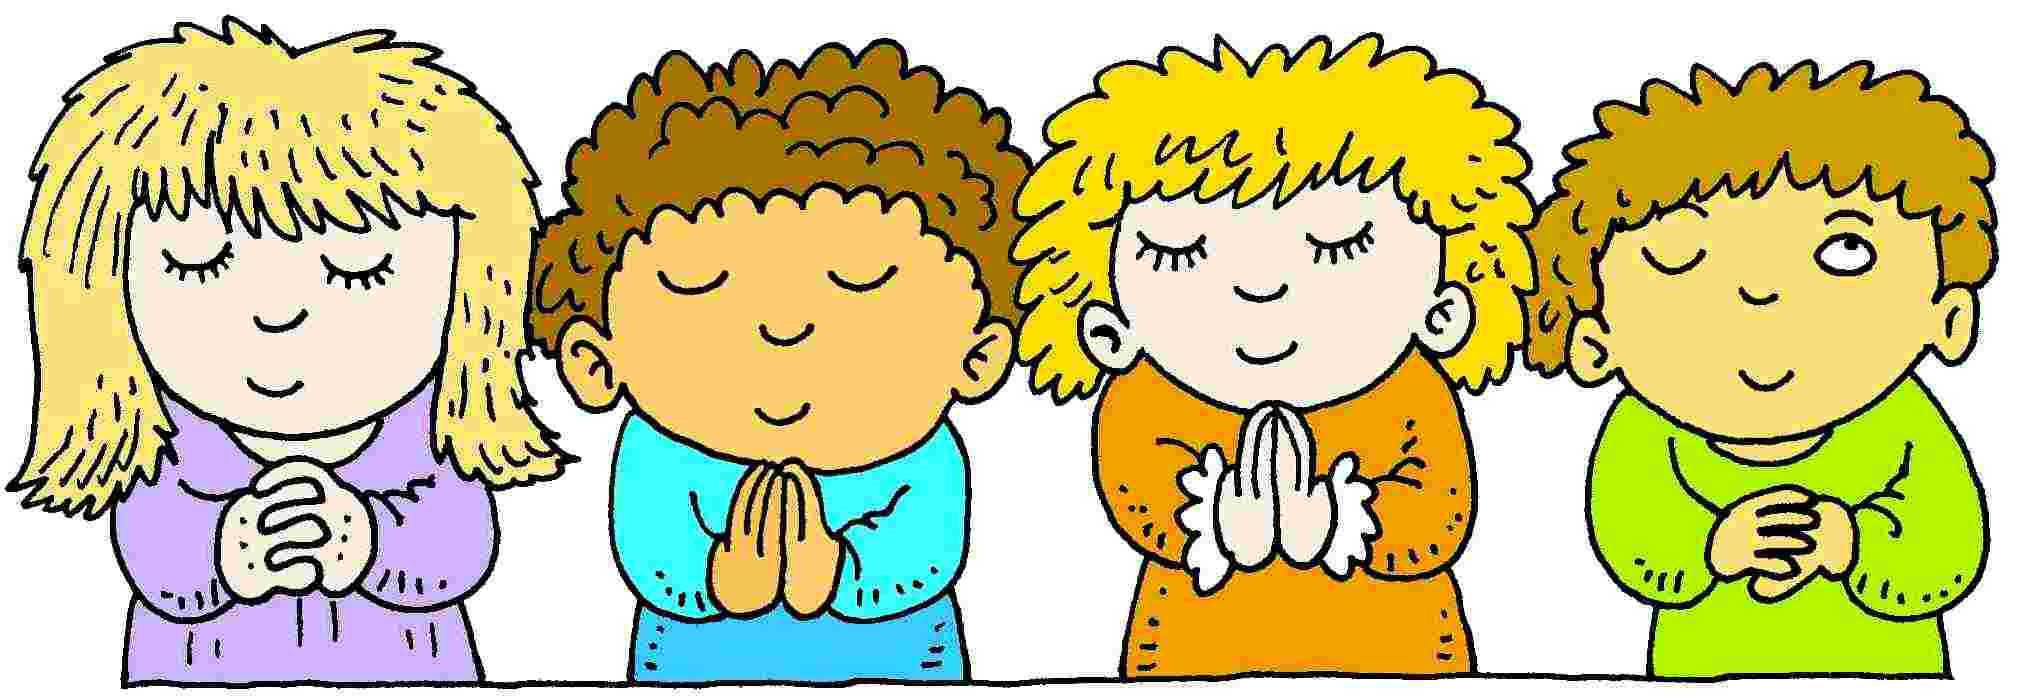 children praying clipart - photo #21